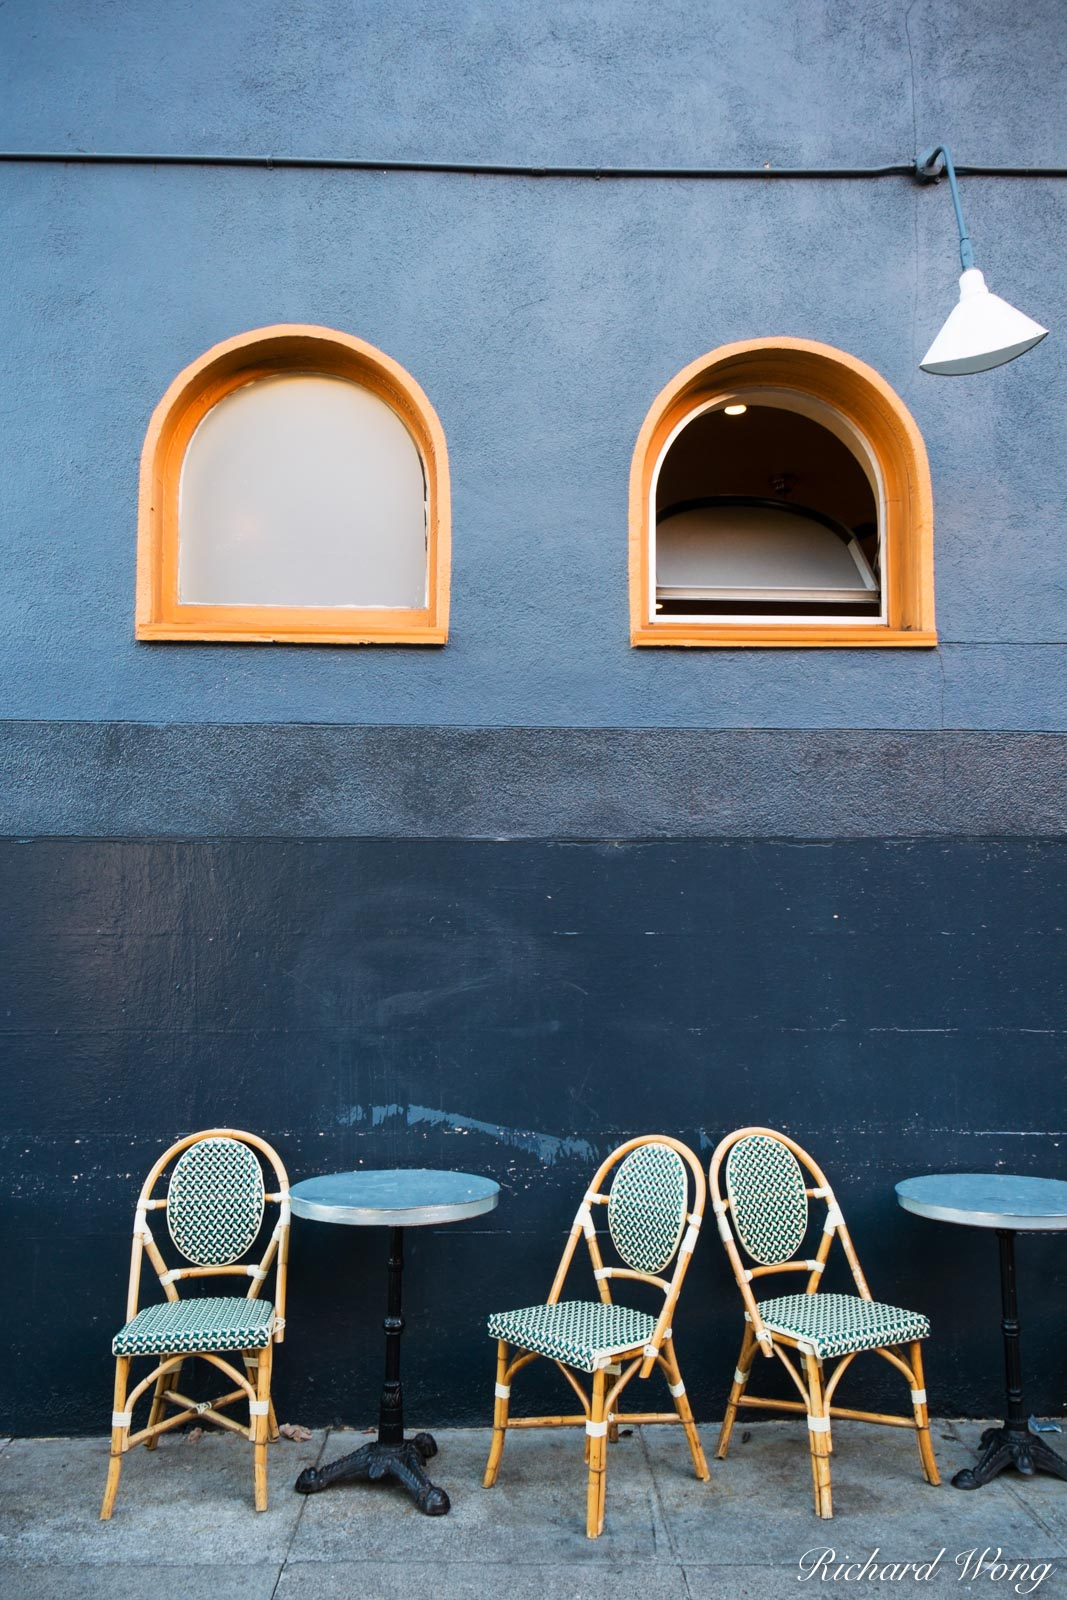 French Bakery Chairs and Tables, Hayes Valley, San Francisco, California, photo, photo